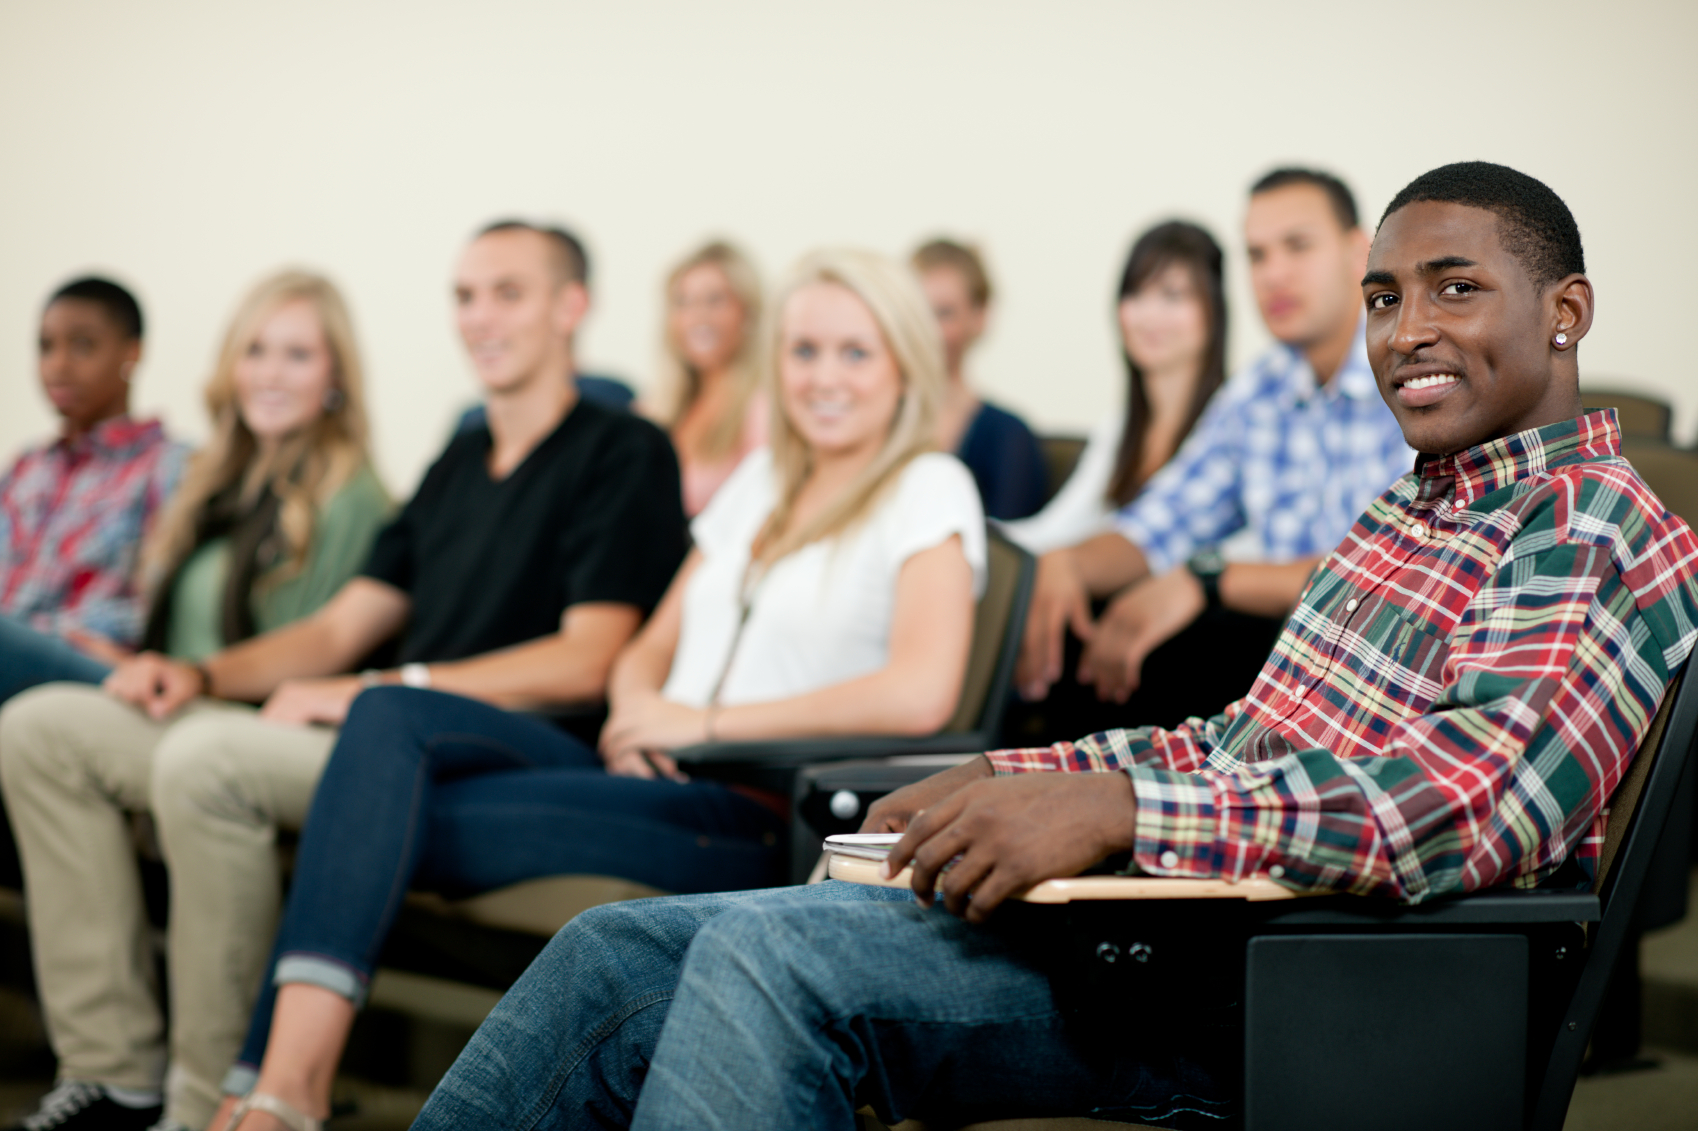 College Education is an invaluable asset for your future